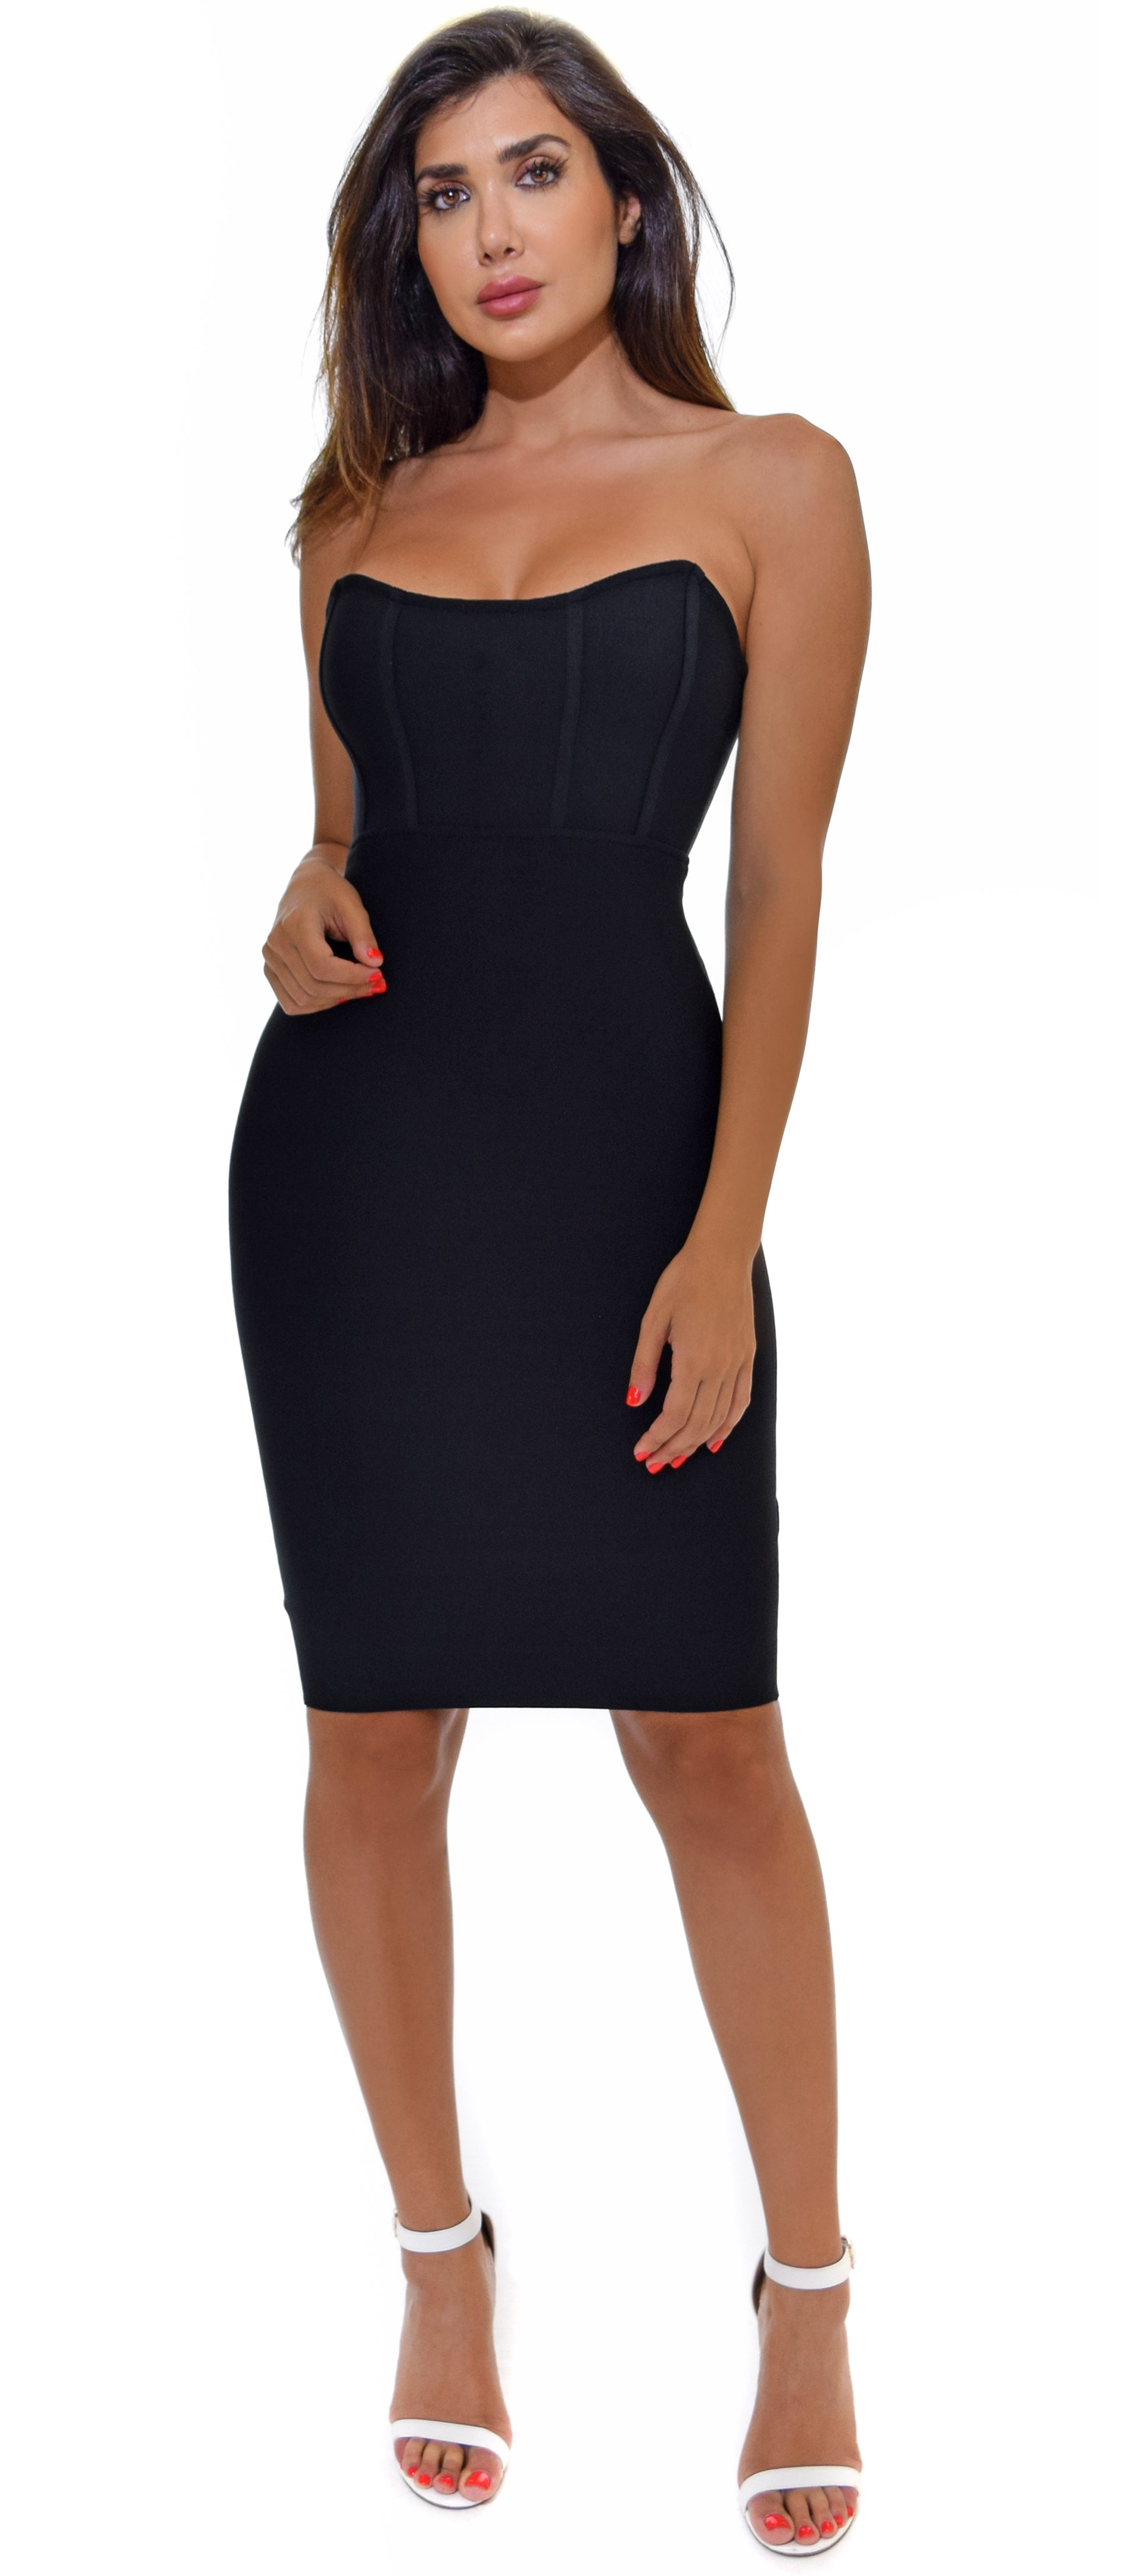 Nahal Black Bandage Dress